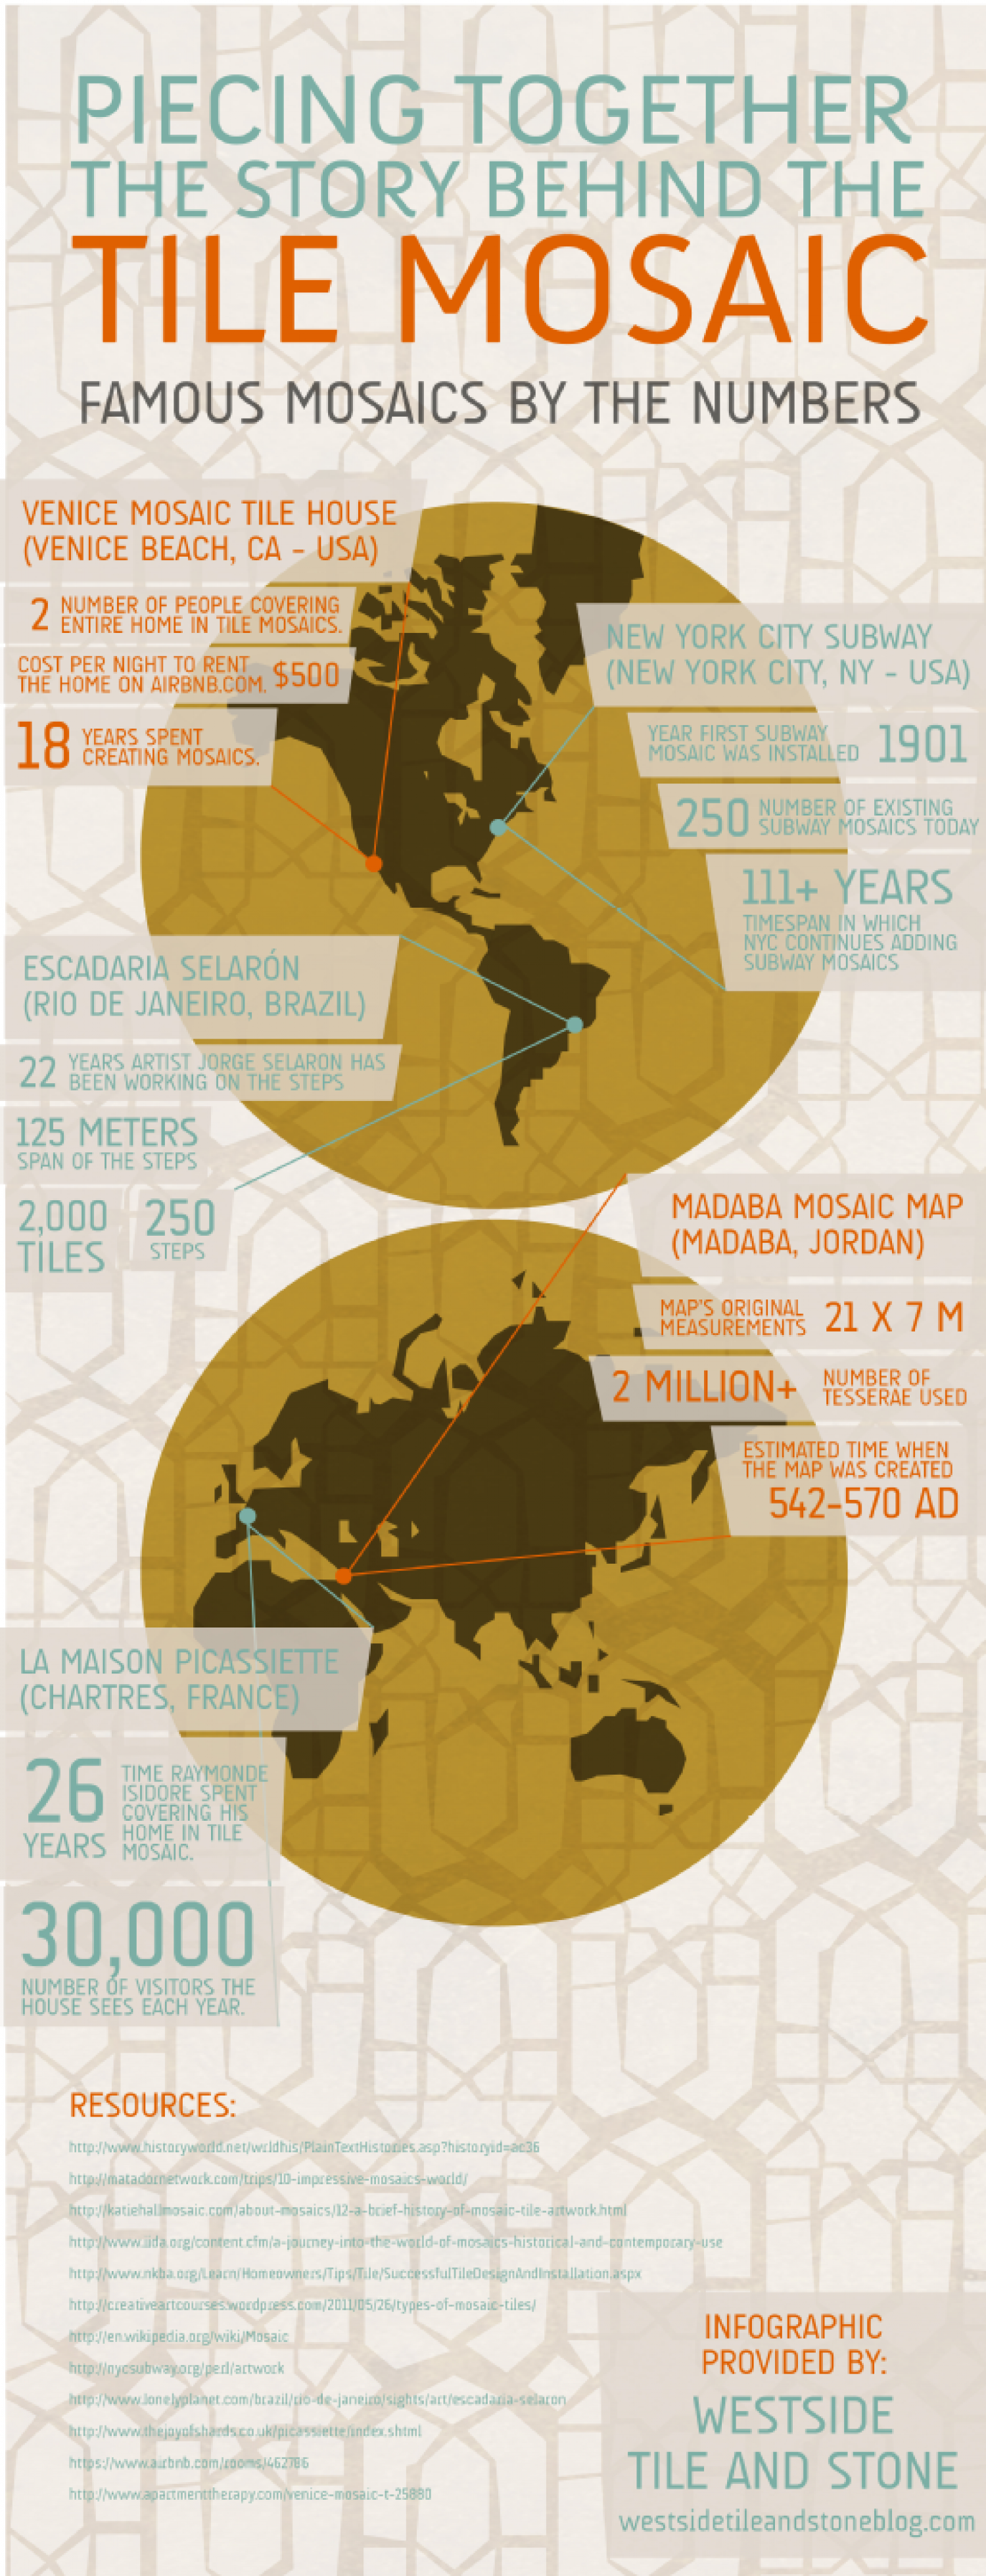 Piecing Together the Story behind the Tile Mosaic Infographic